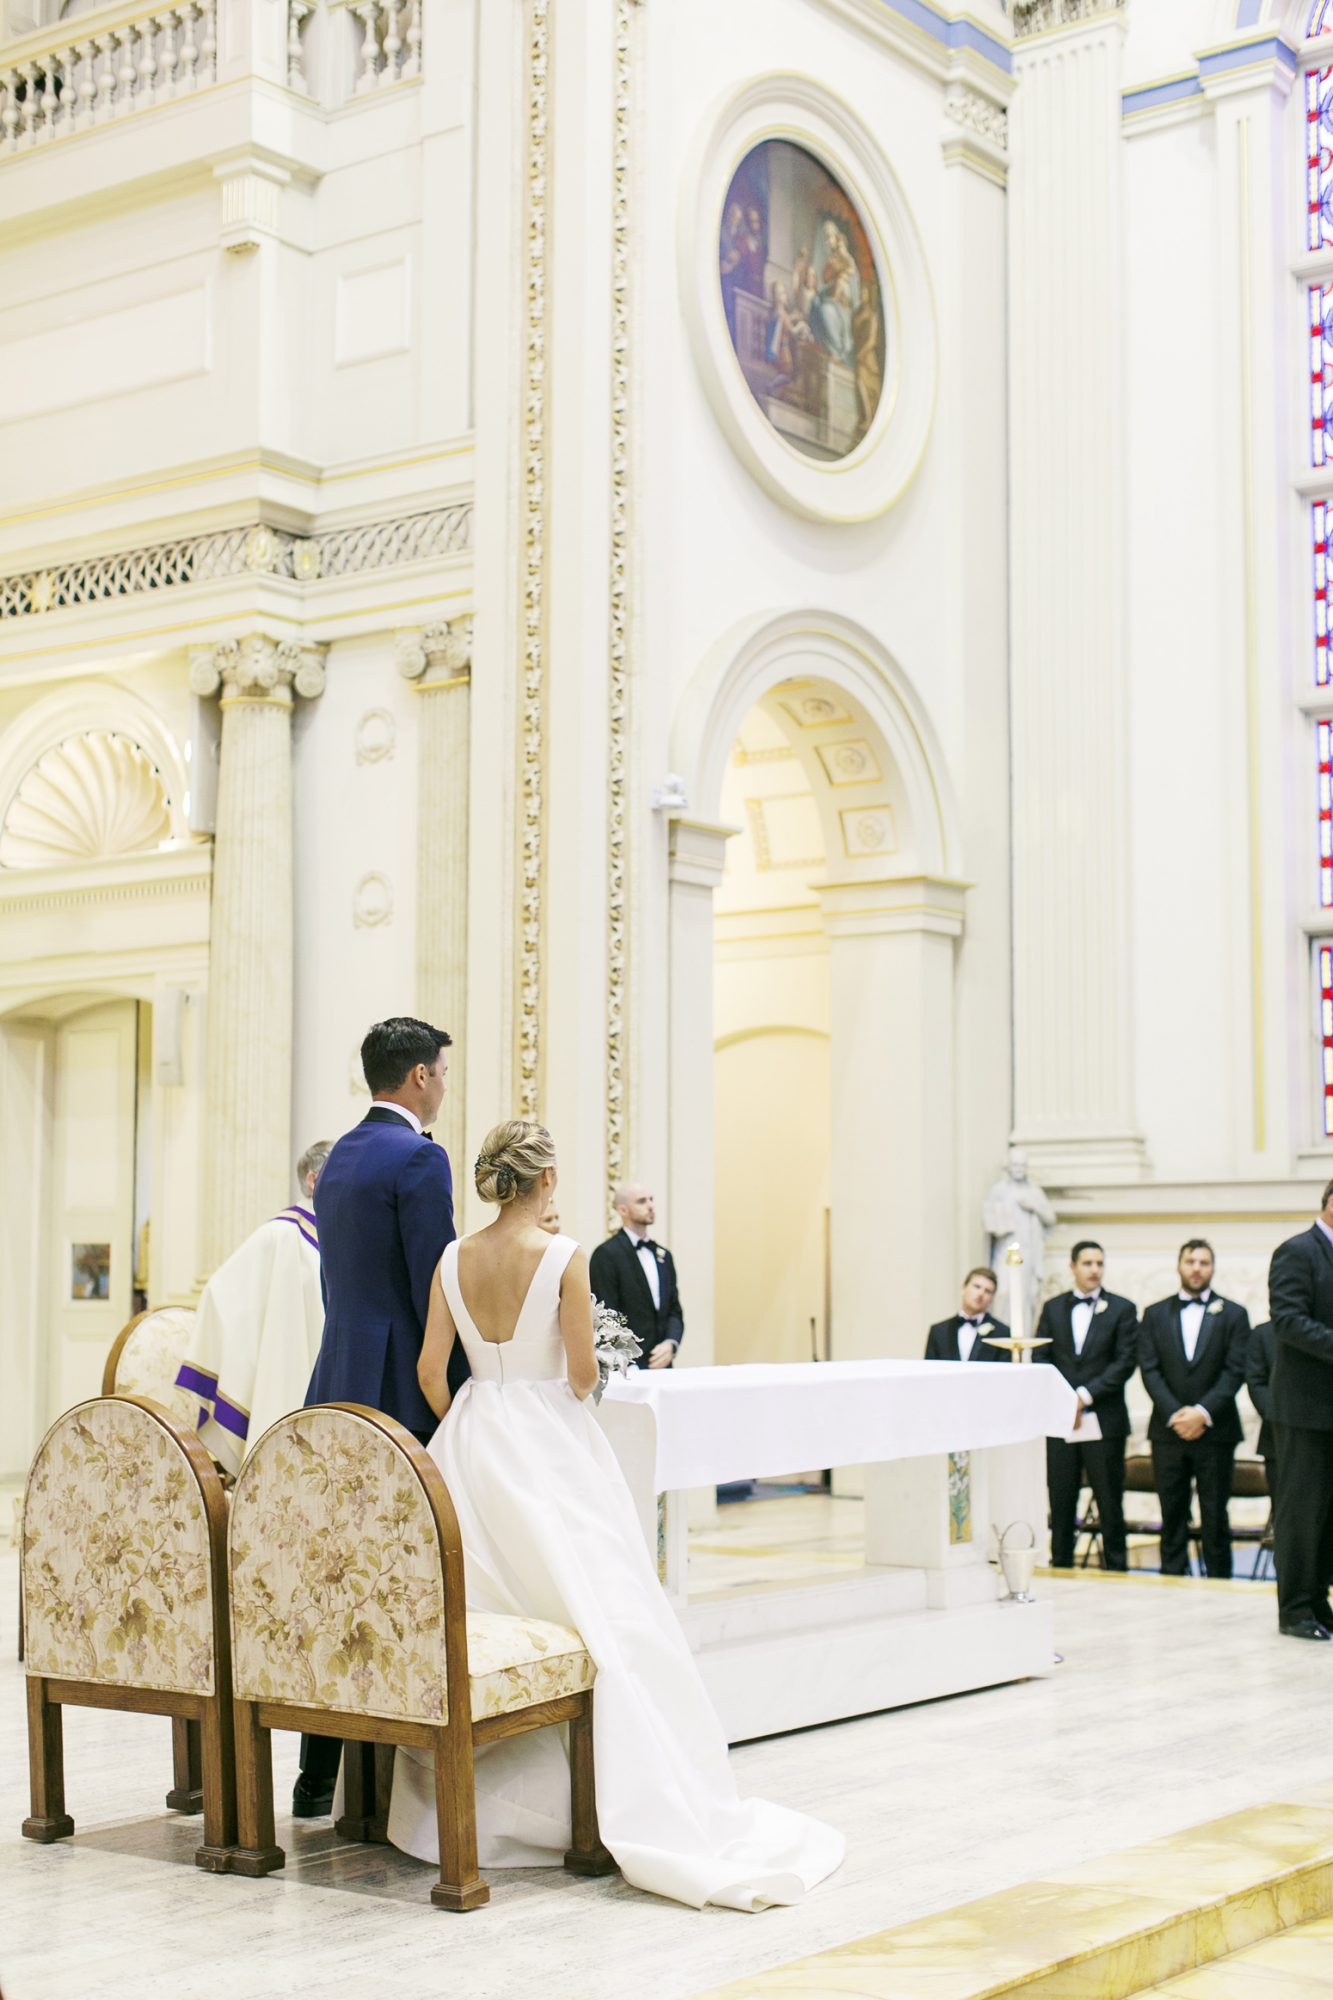 bride and groom standing at church alter during ceremony